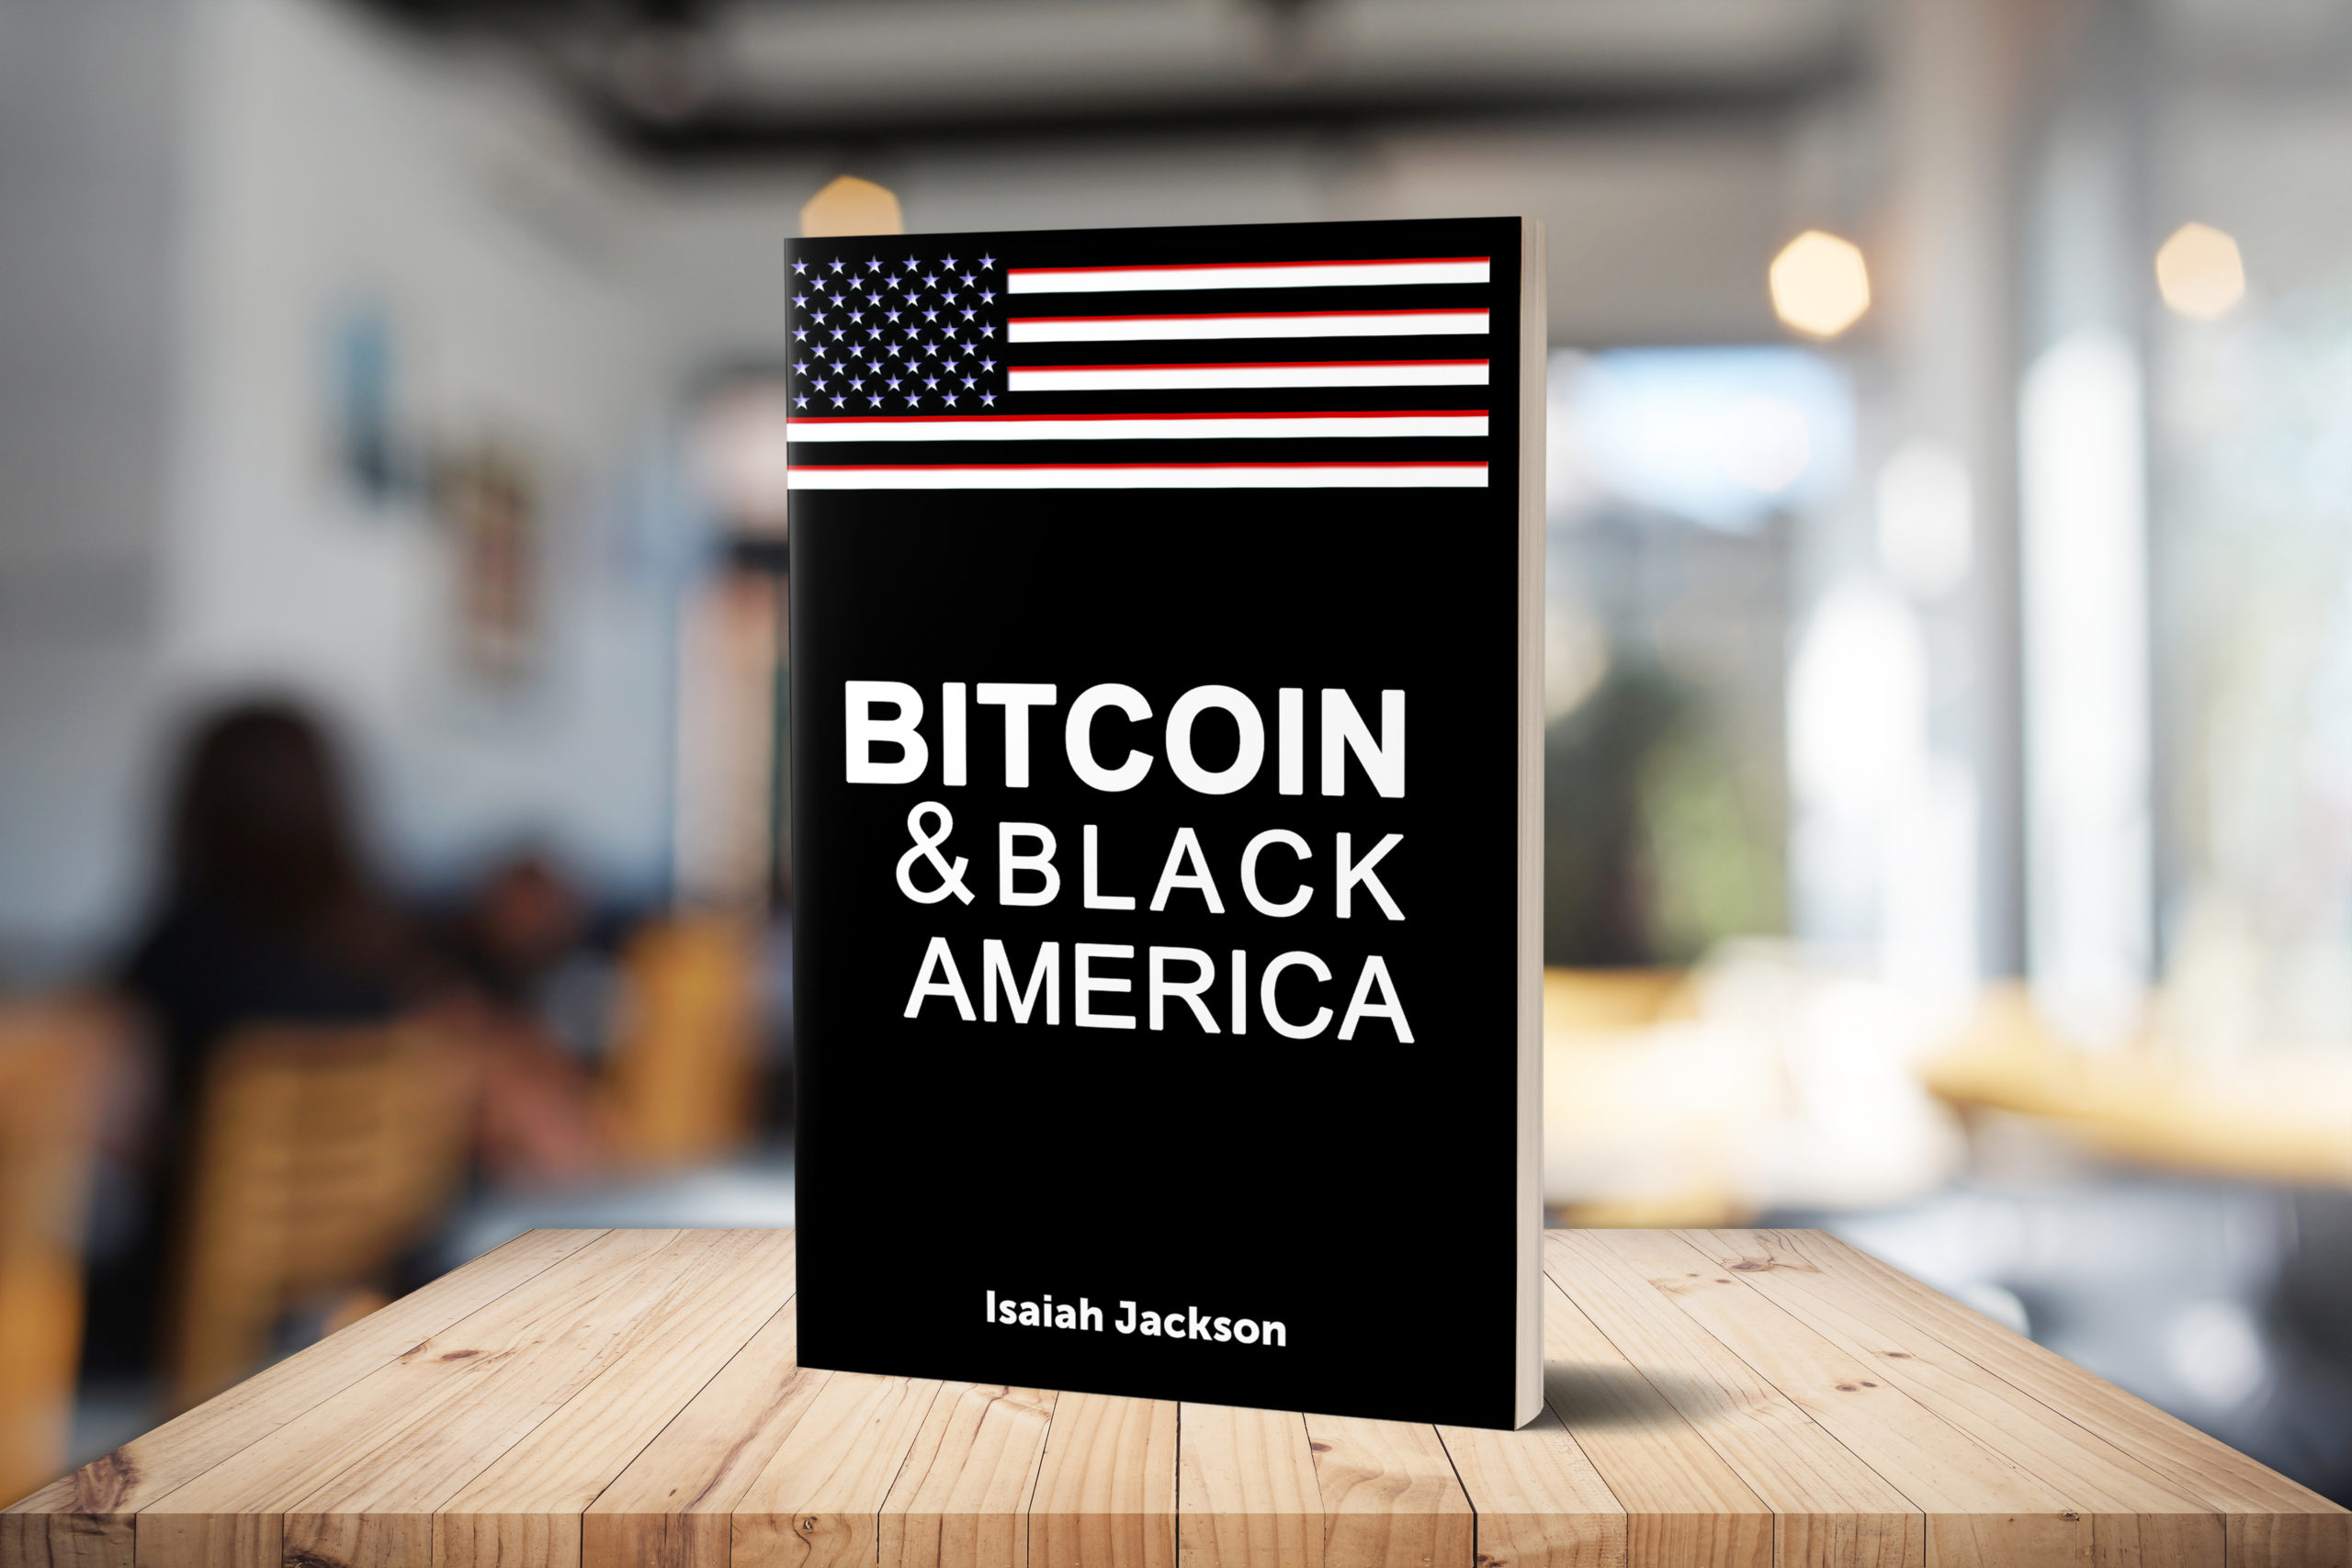 Bitcoin & Black America Book By Isaiah Jackson